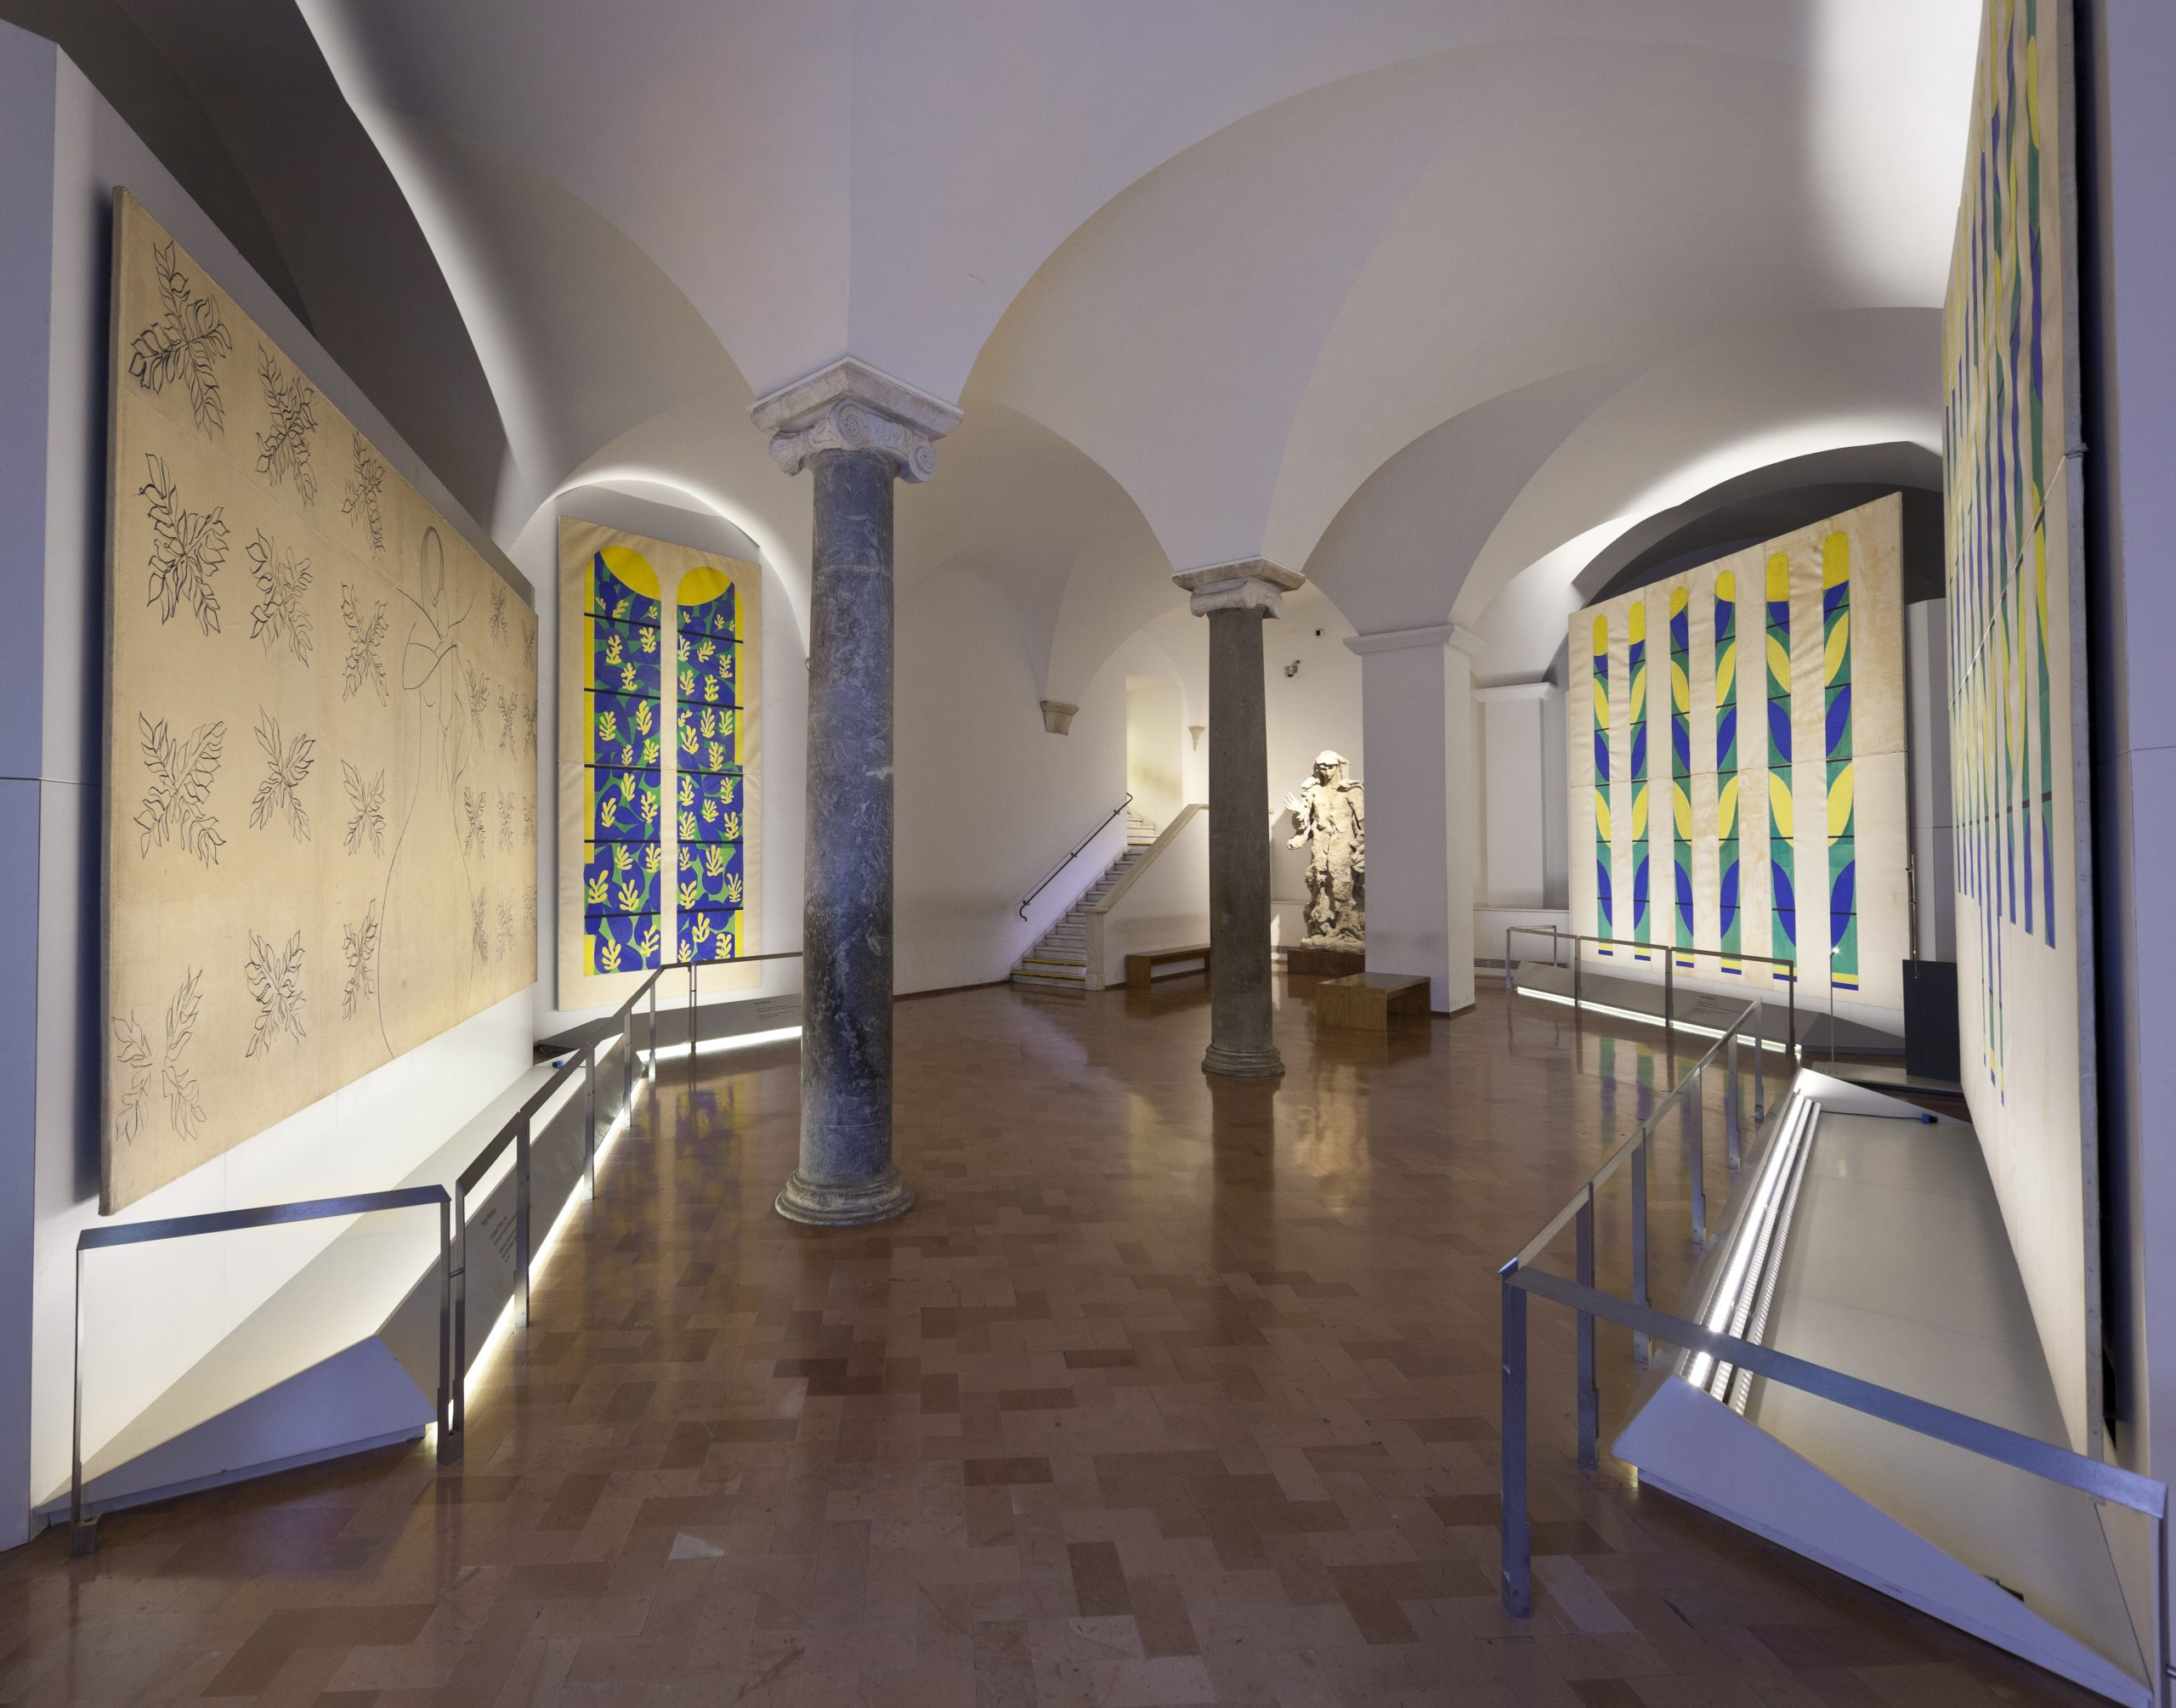 Vatican Museum contemporary art Collection. Interview with the manager Micol Forti